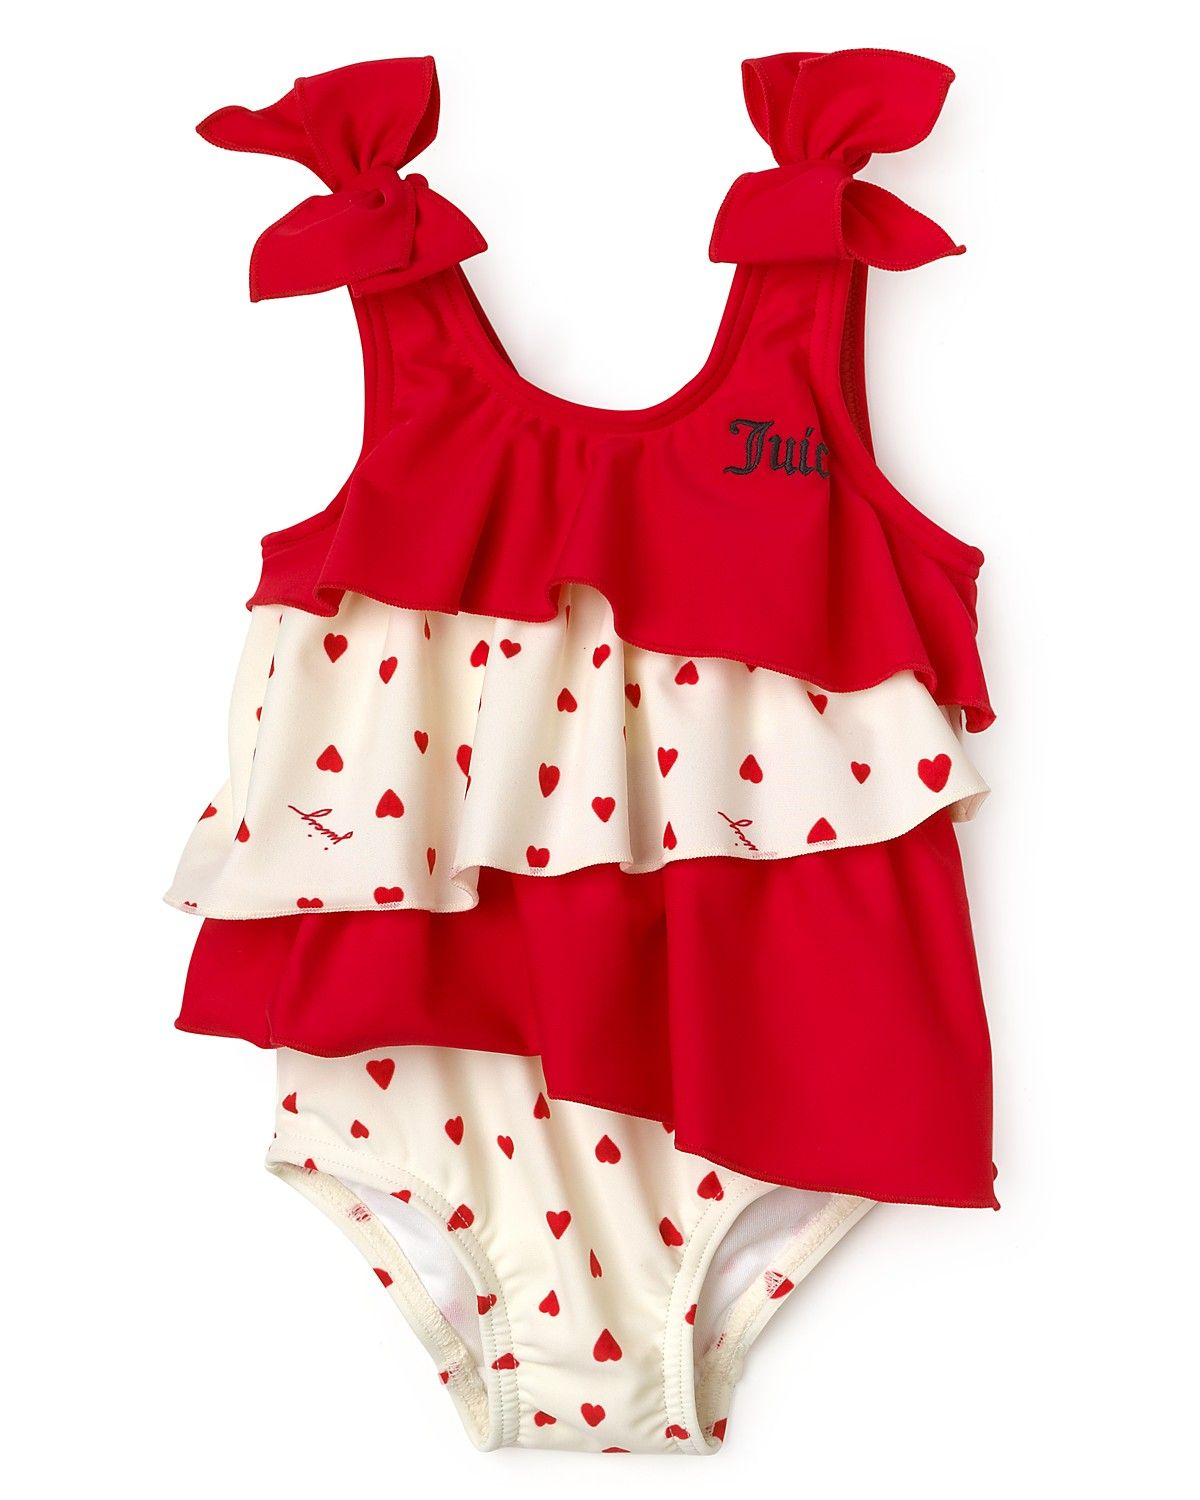 Love this Juicy Suit for my future baby